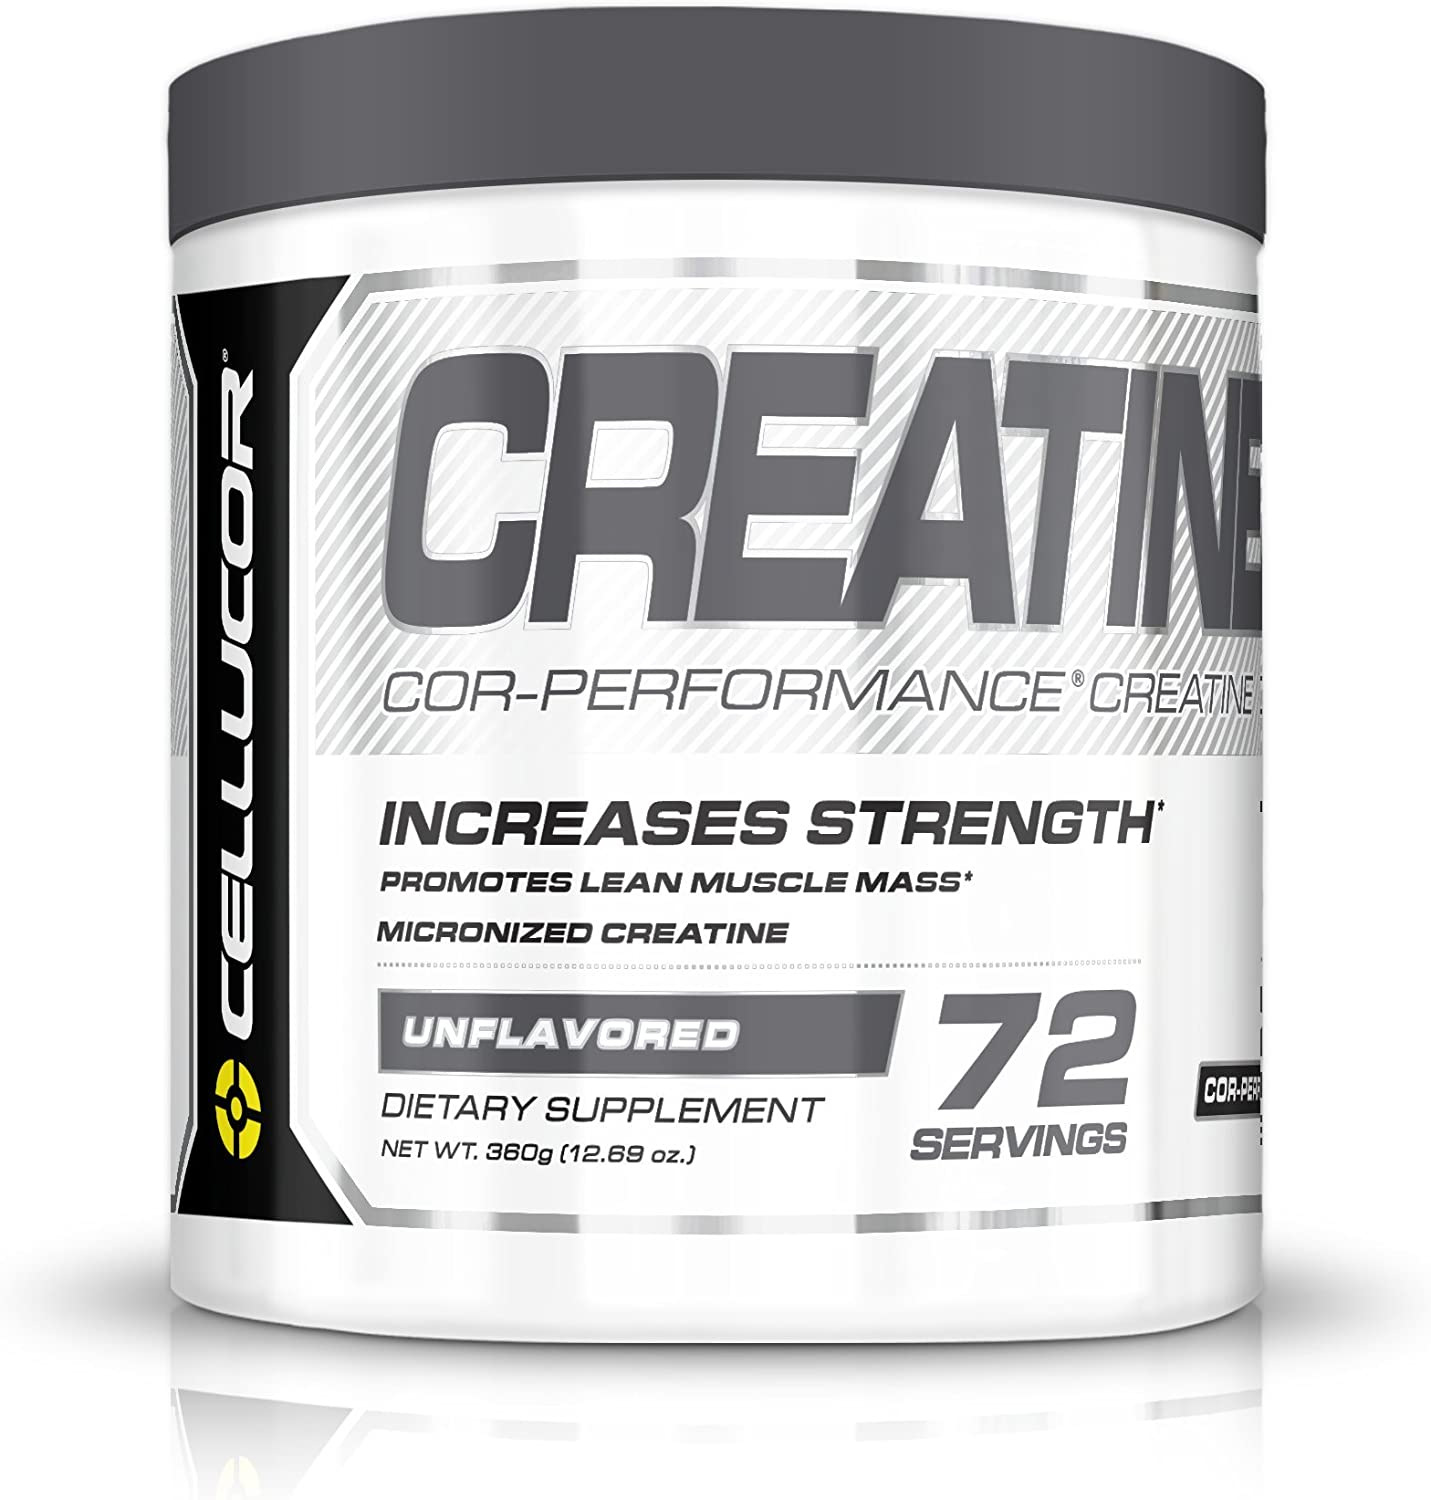 Cellucor Cor-Performance Creatine Monohydrate for Strength and Muscle Growth, 72 Servings: Health & Personal Care